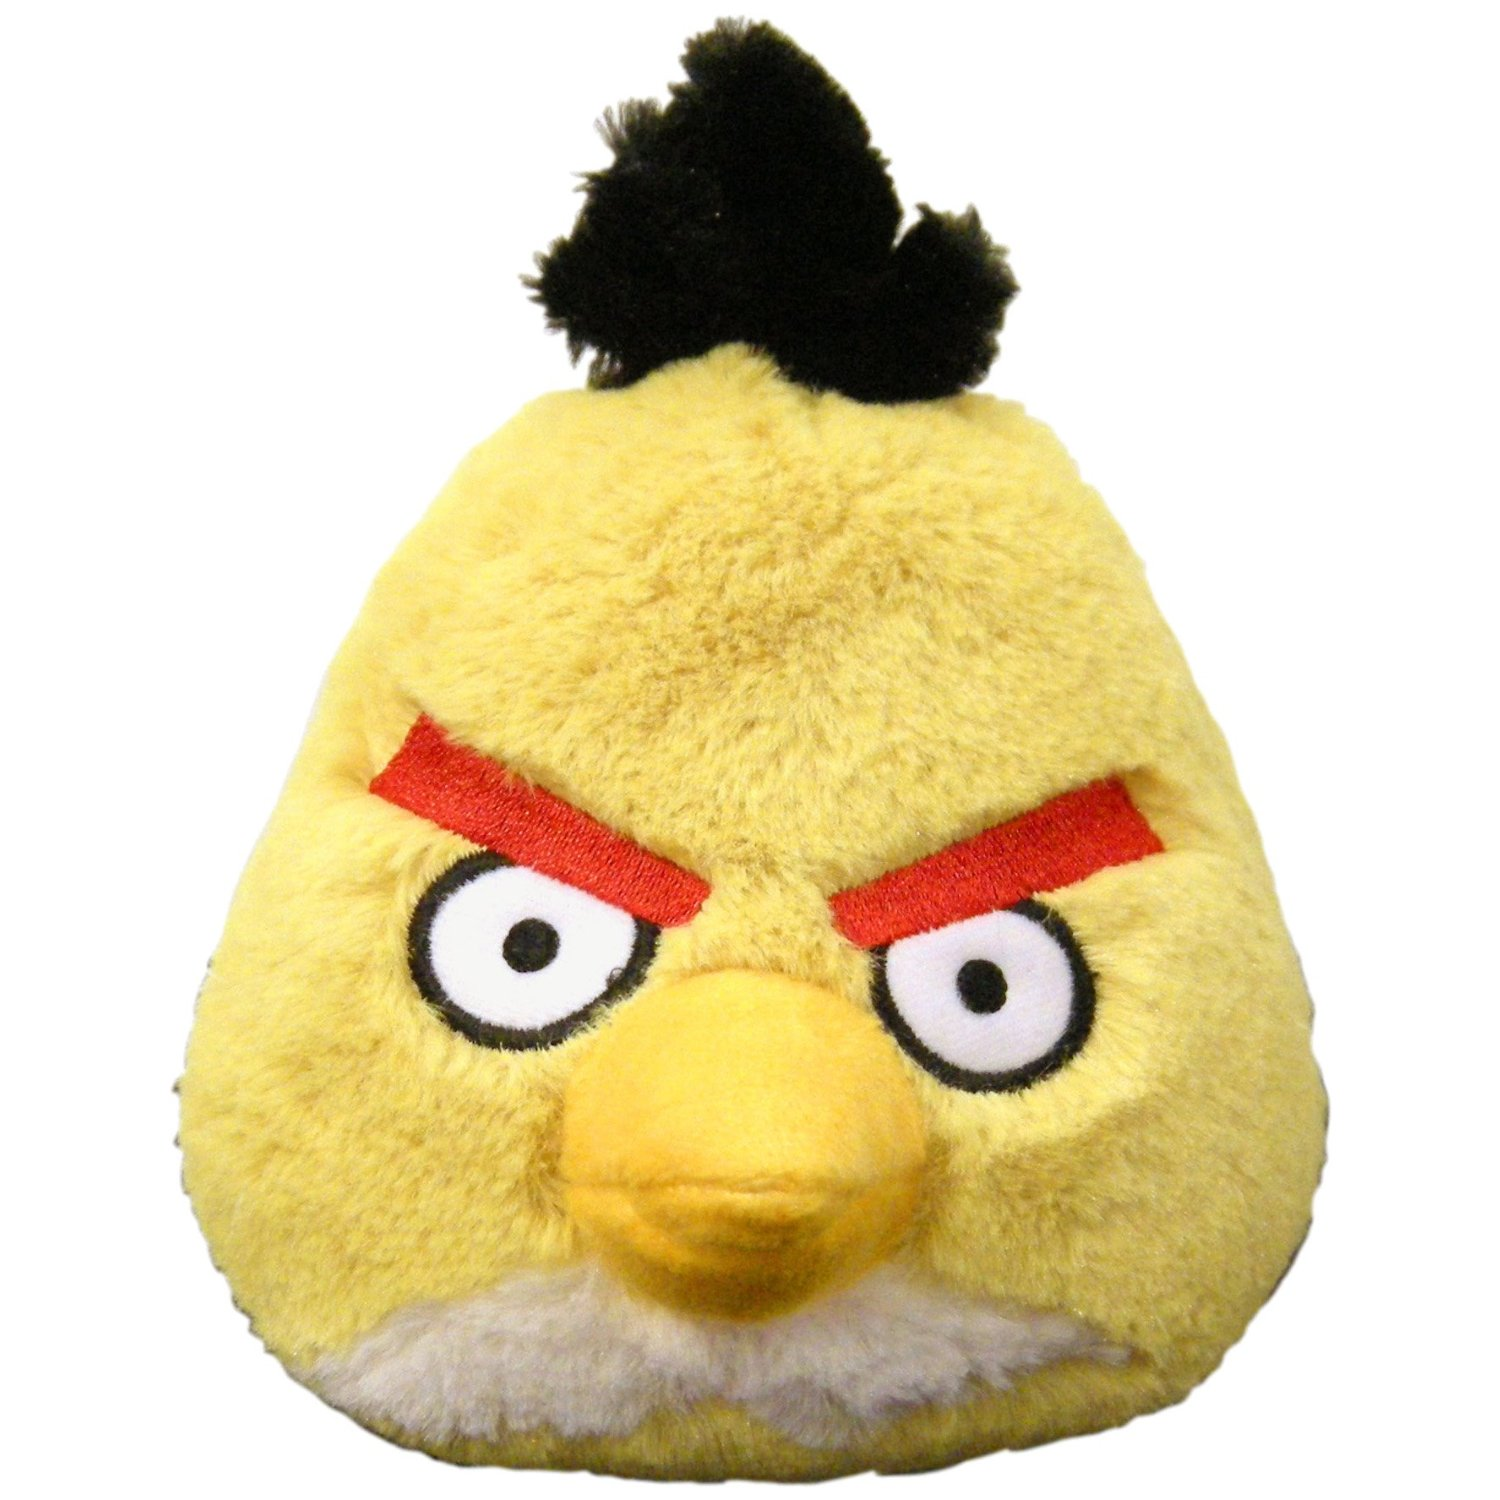 Angry Birds Stuffed Toys : Angry birds quot plush yellow bird with sound gift ideas